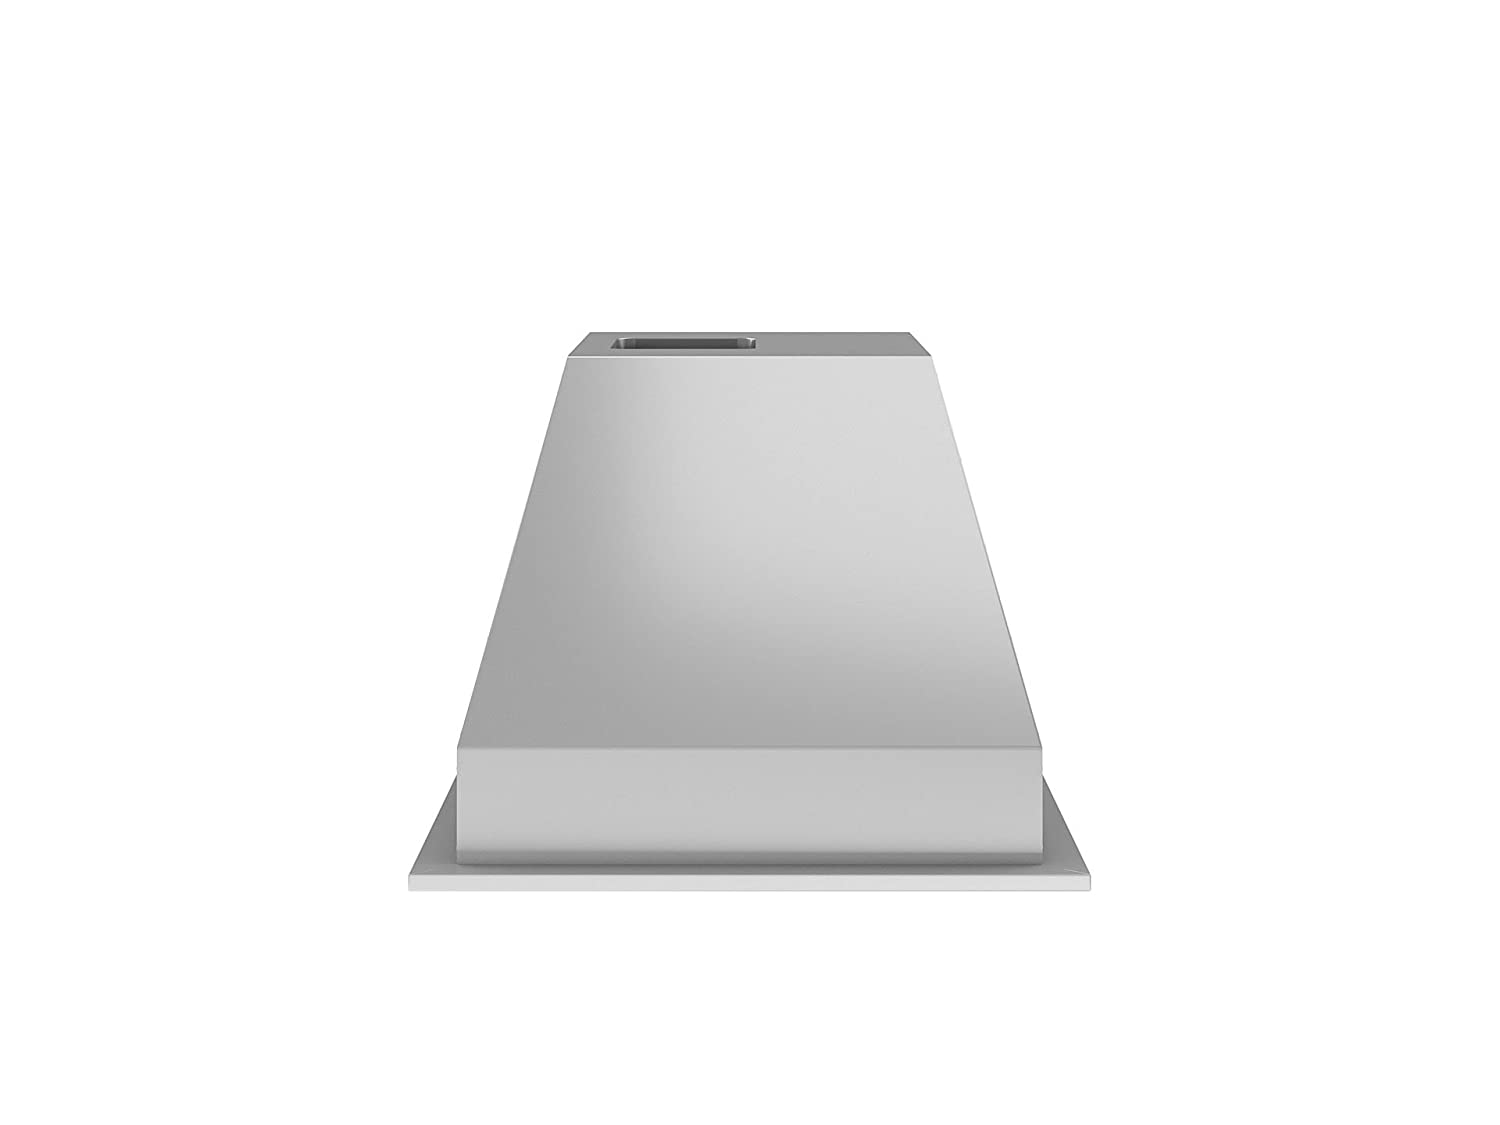 Silver Ancona AN-1311 Chef Series Built-in 28 Ducted 600 CFM Insert Range Hood with LED Lights